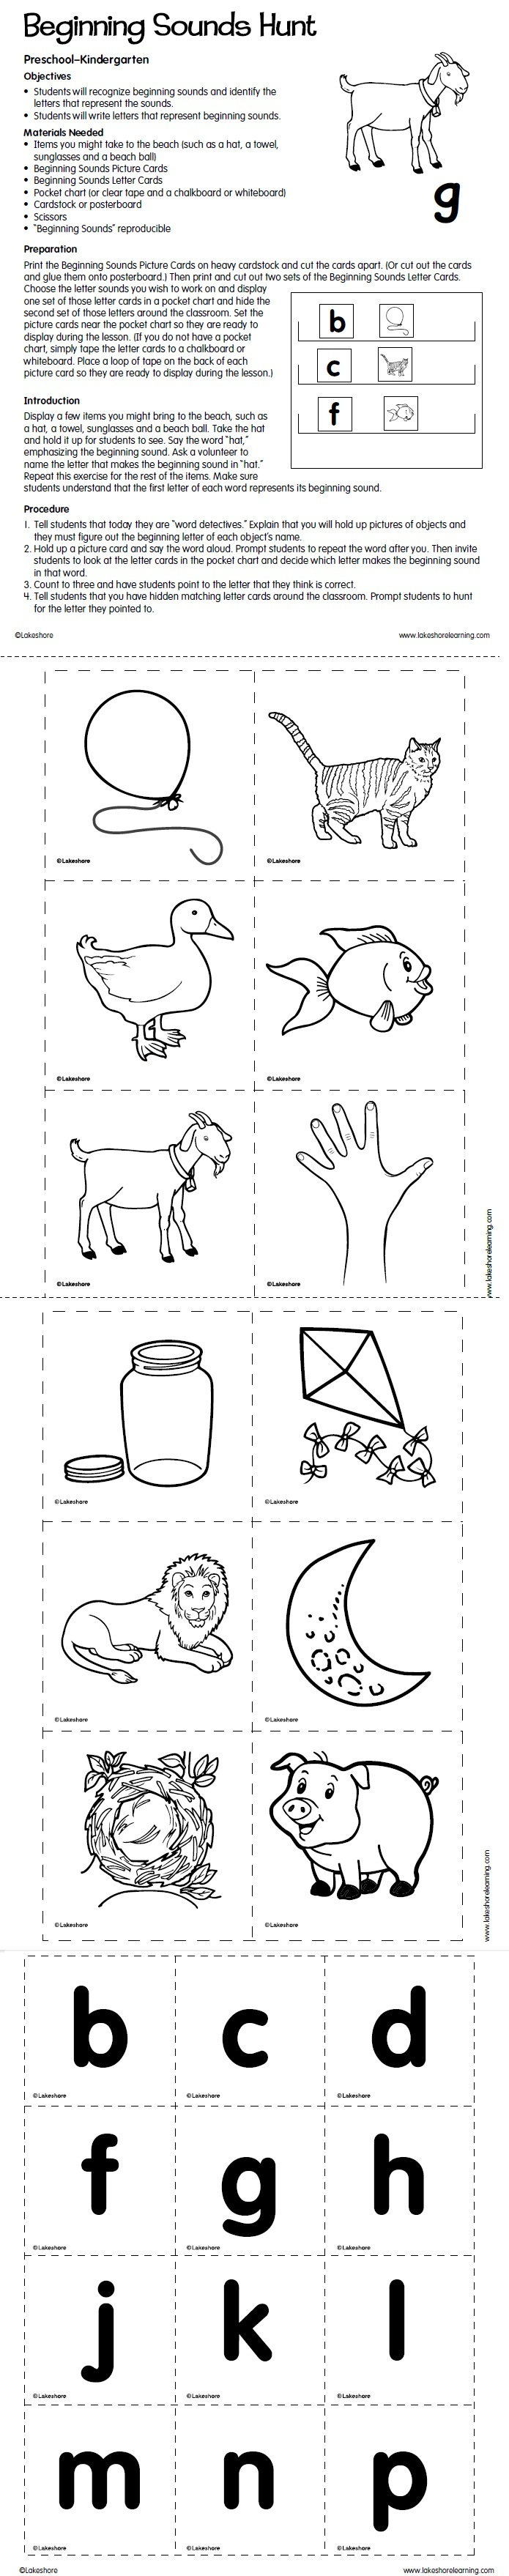 Worksheet Kindergarten Beginning Sounds 1000 images about beginning sounds on pinterest hunt lesson plan from lakeshore learning